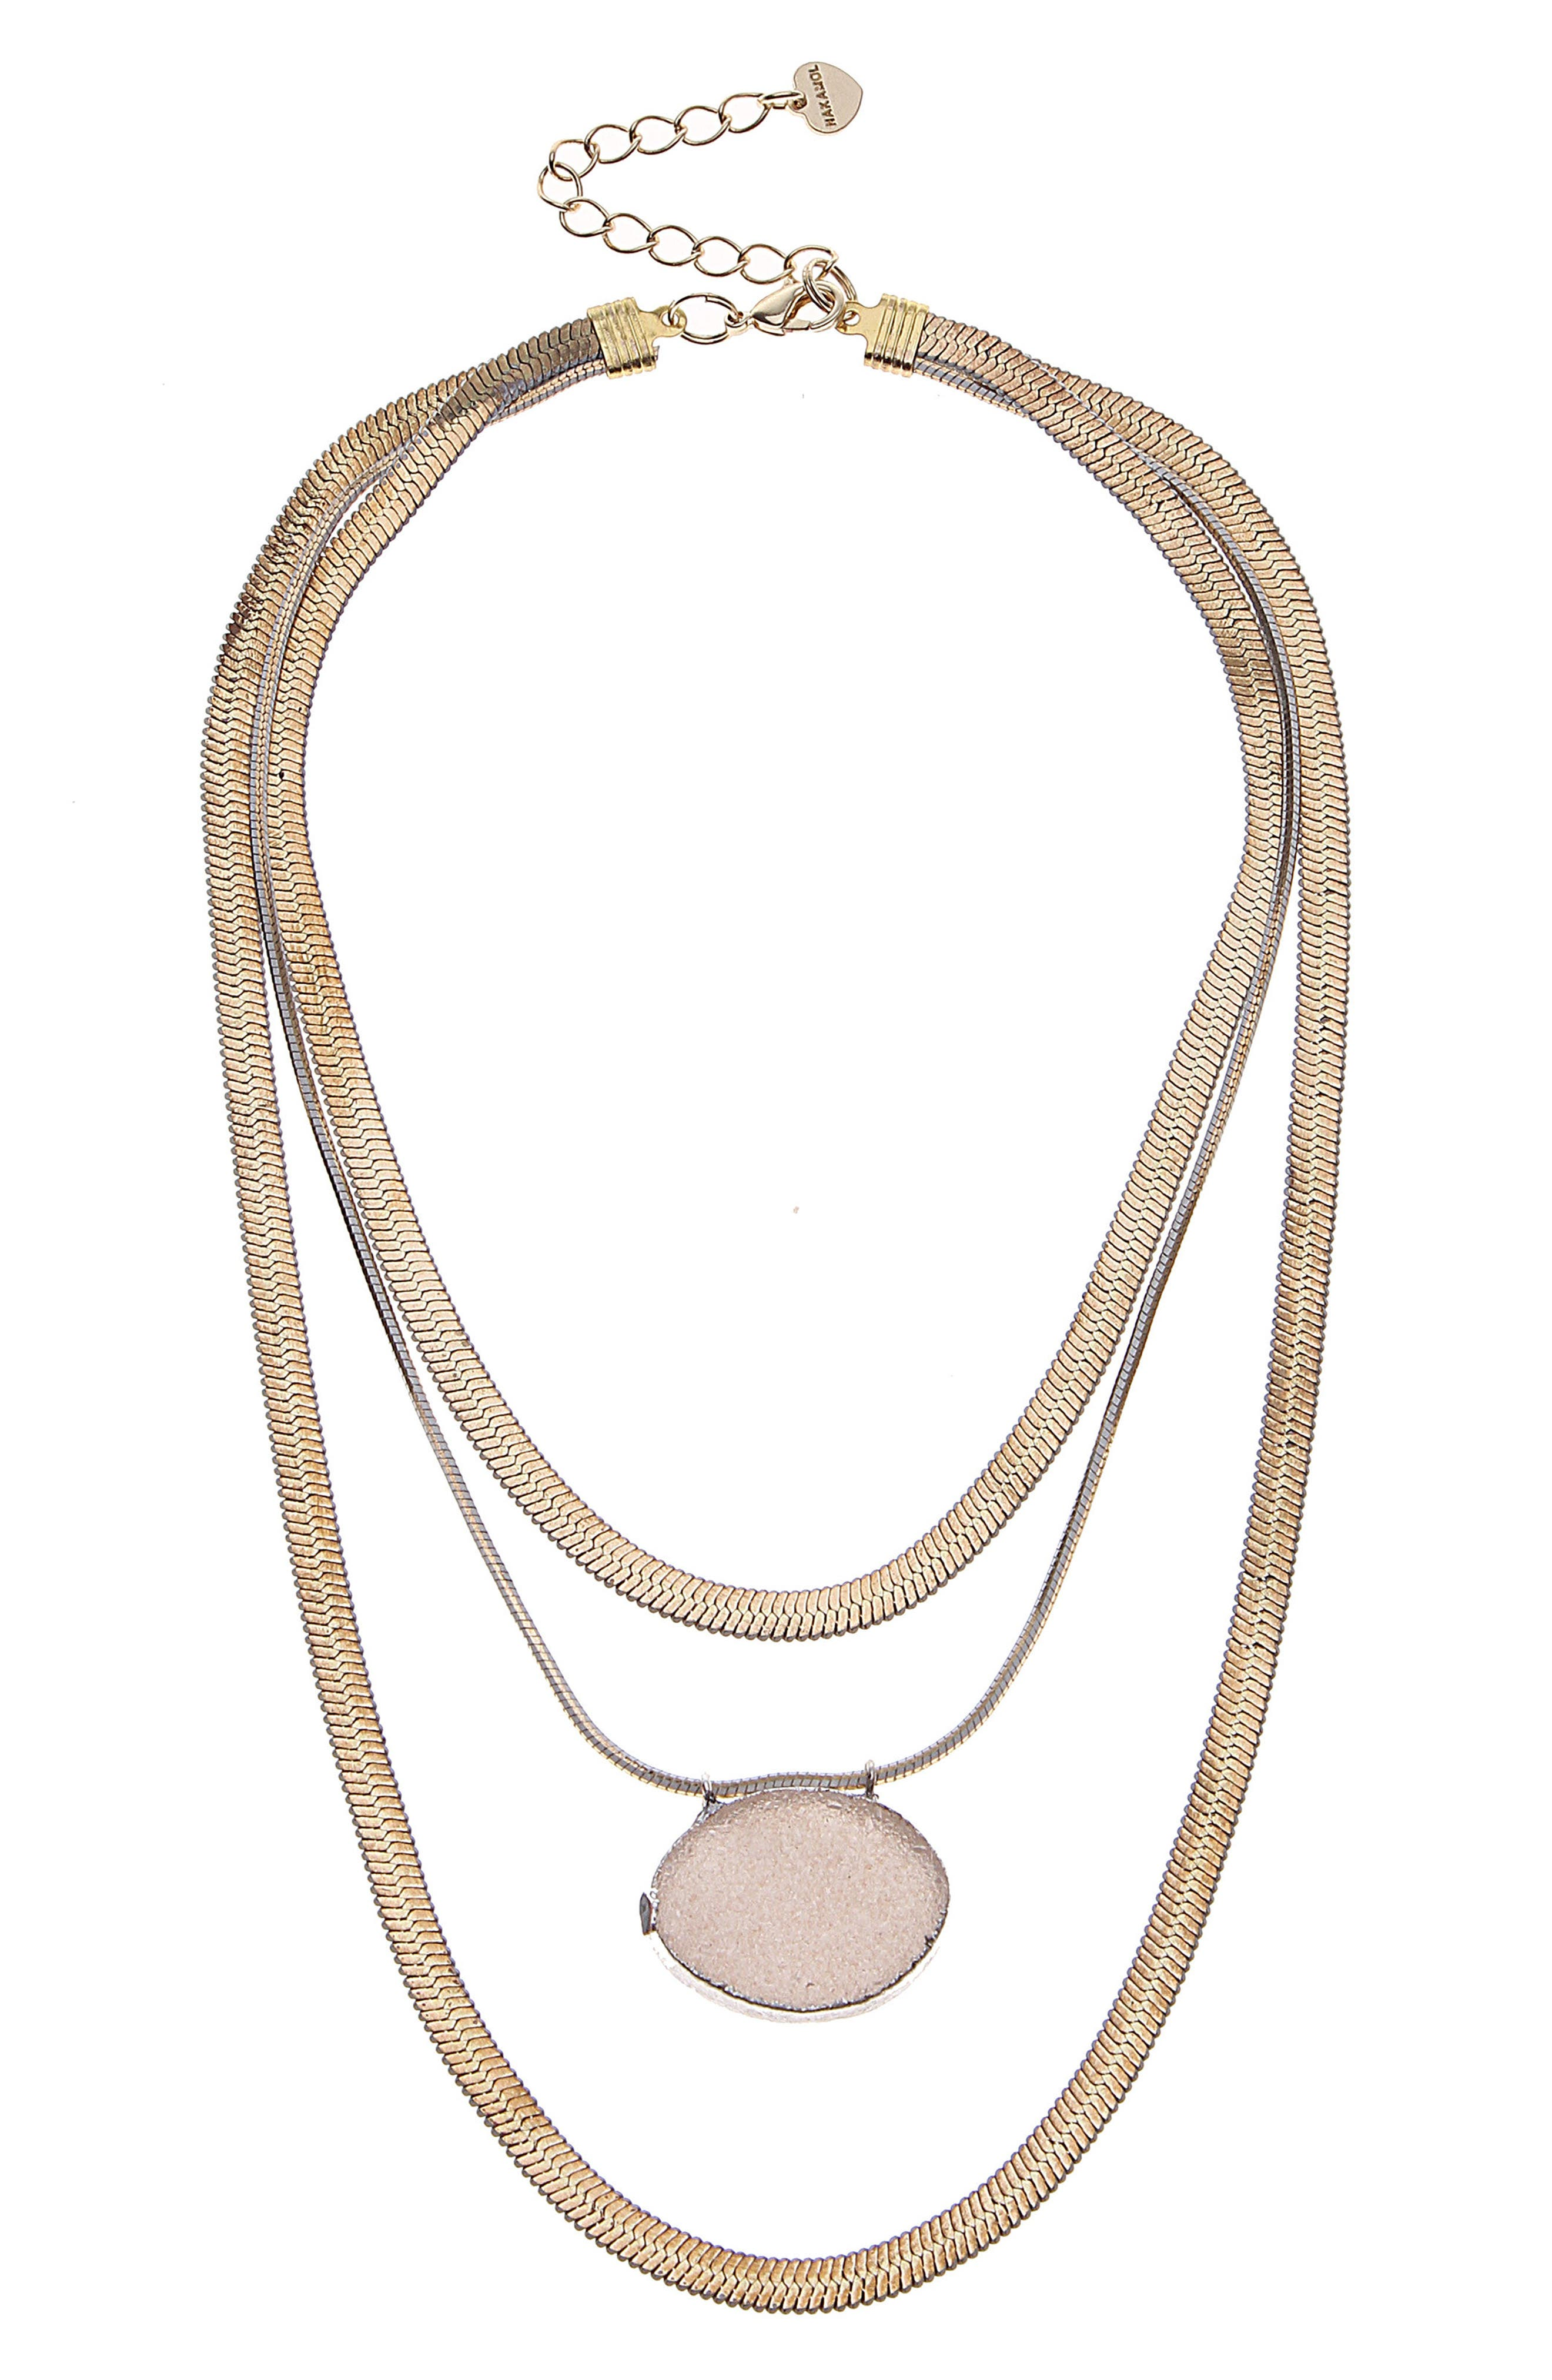 Layered Snake Chain & Drusy Pendant Necklace,                         Main,                         color, Gold